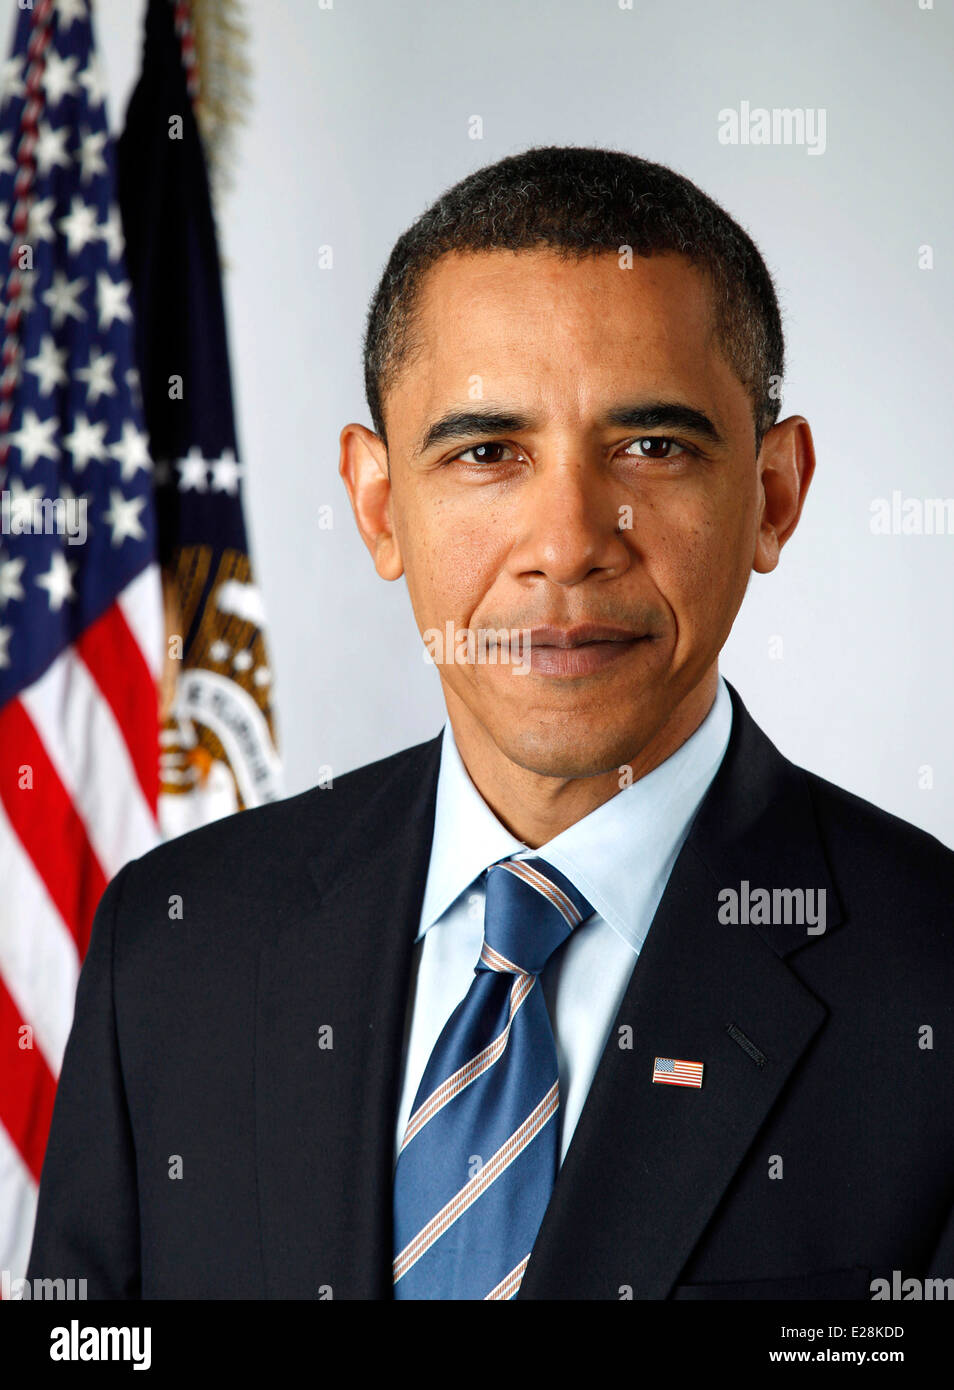 President Barack Obama, 44th President of the United States - Stock Image